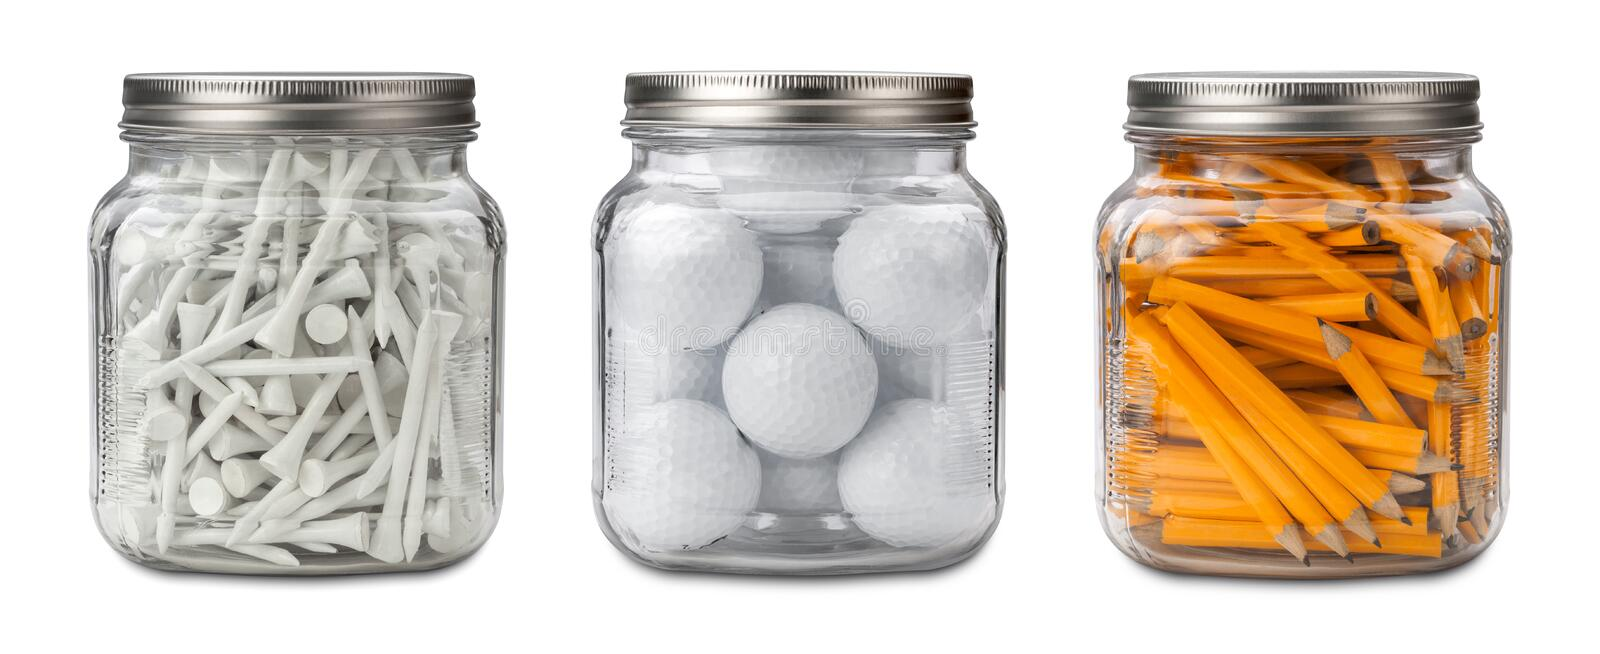 Golf Balls, Tees, and Pencils royalty free stock image